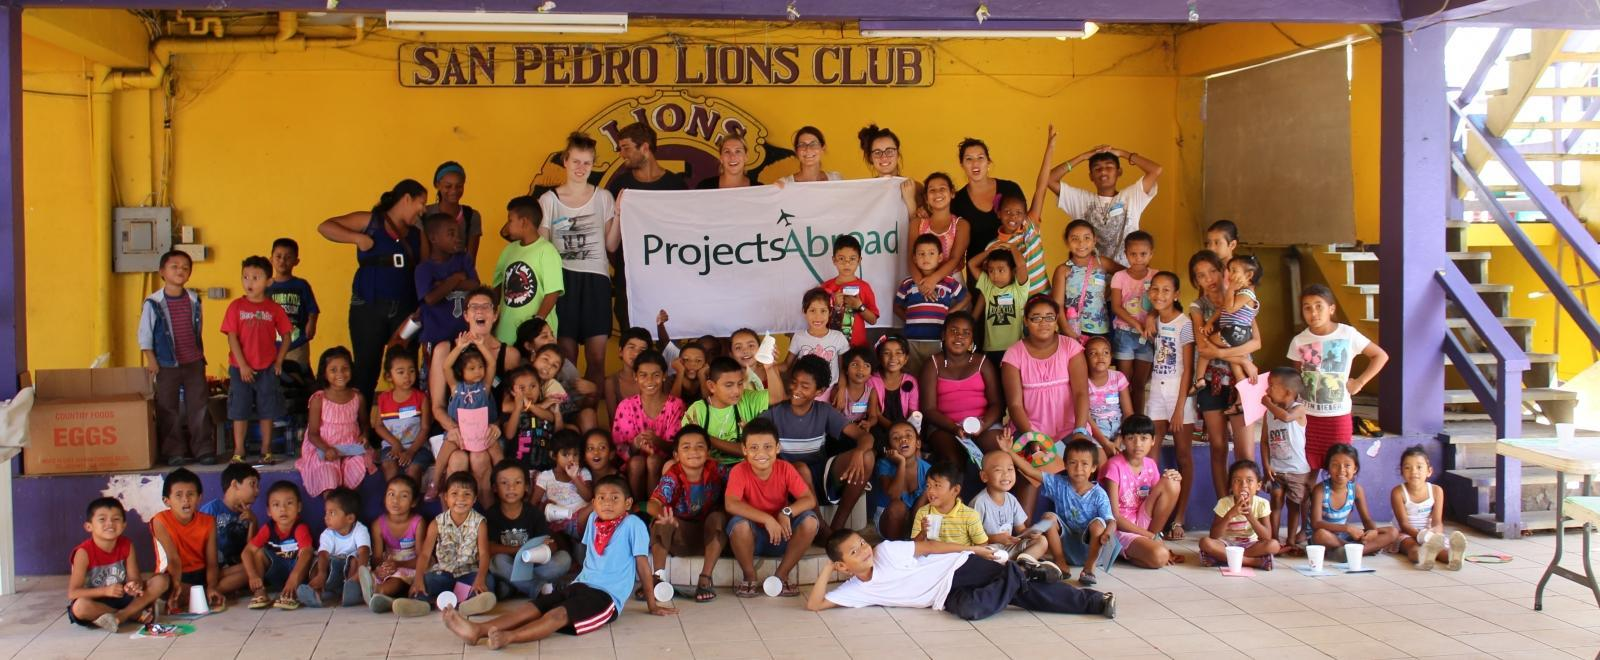 A group of volunteers takes part in conservation and community work in Belize for teenagers